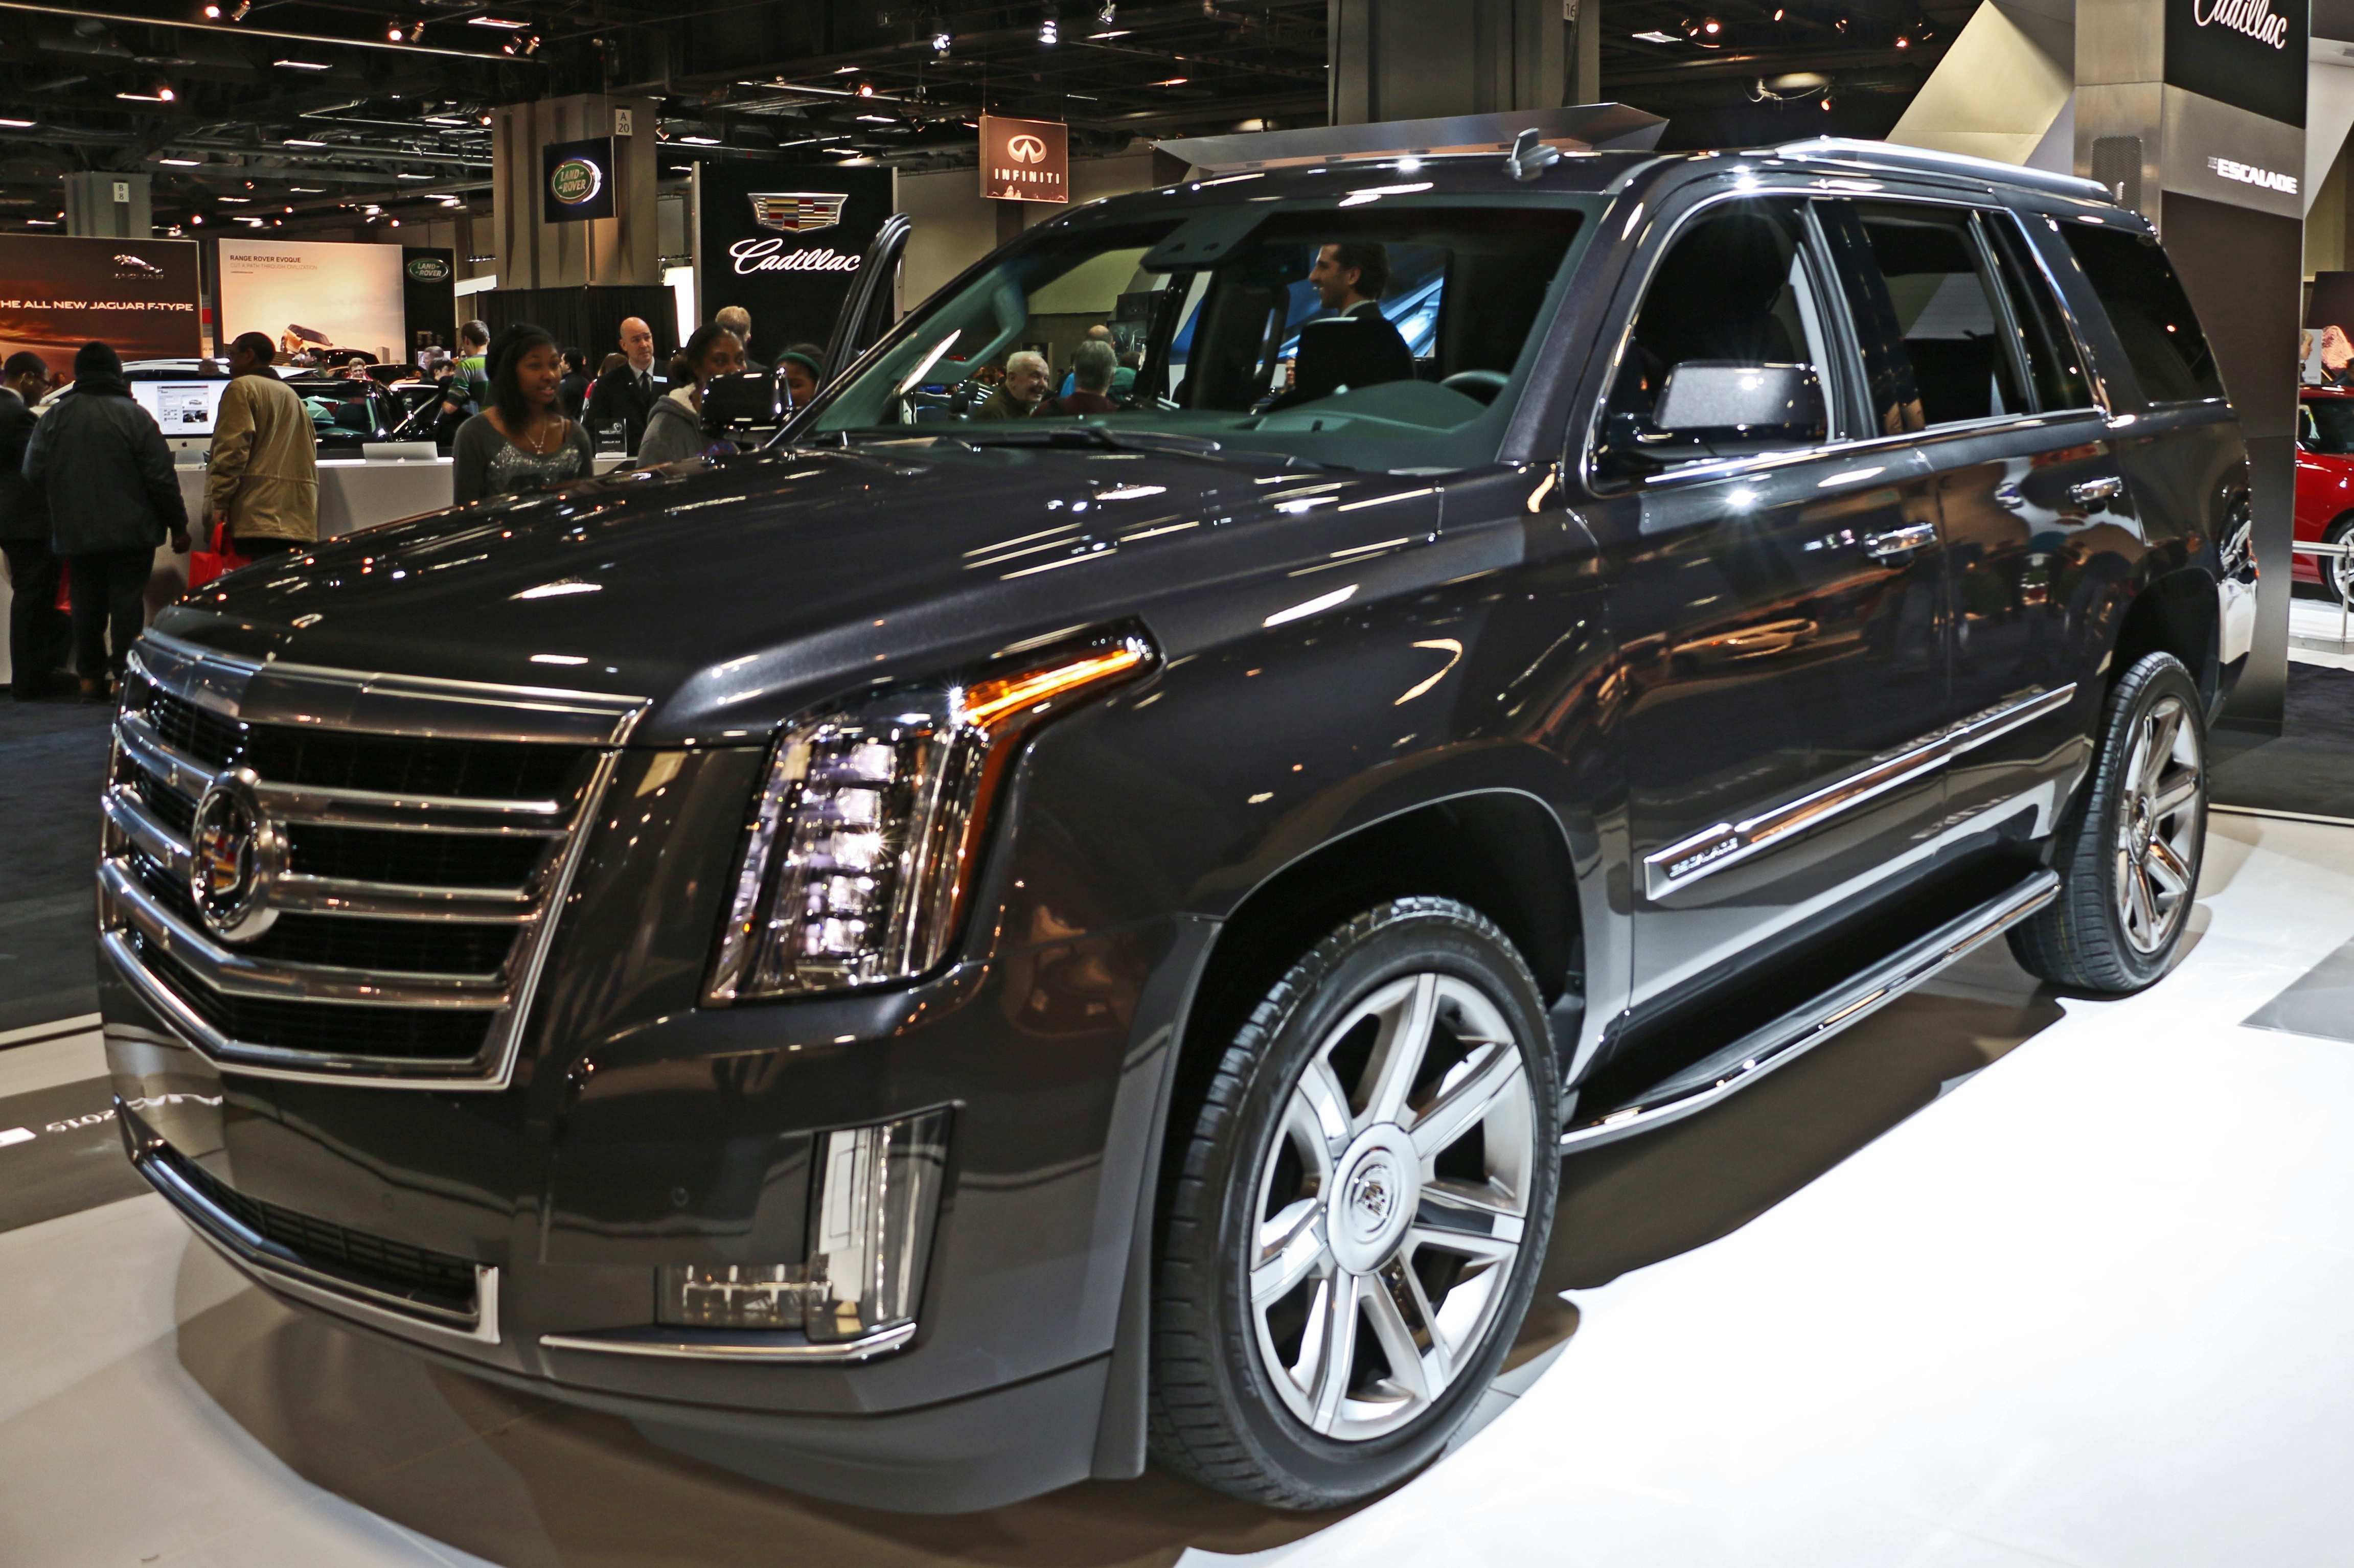 42 Gallery of 2019 Cadillac Escalade Changes Rumors by 2019 Cadillac Escalade Changes